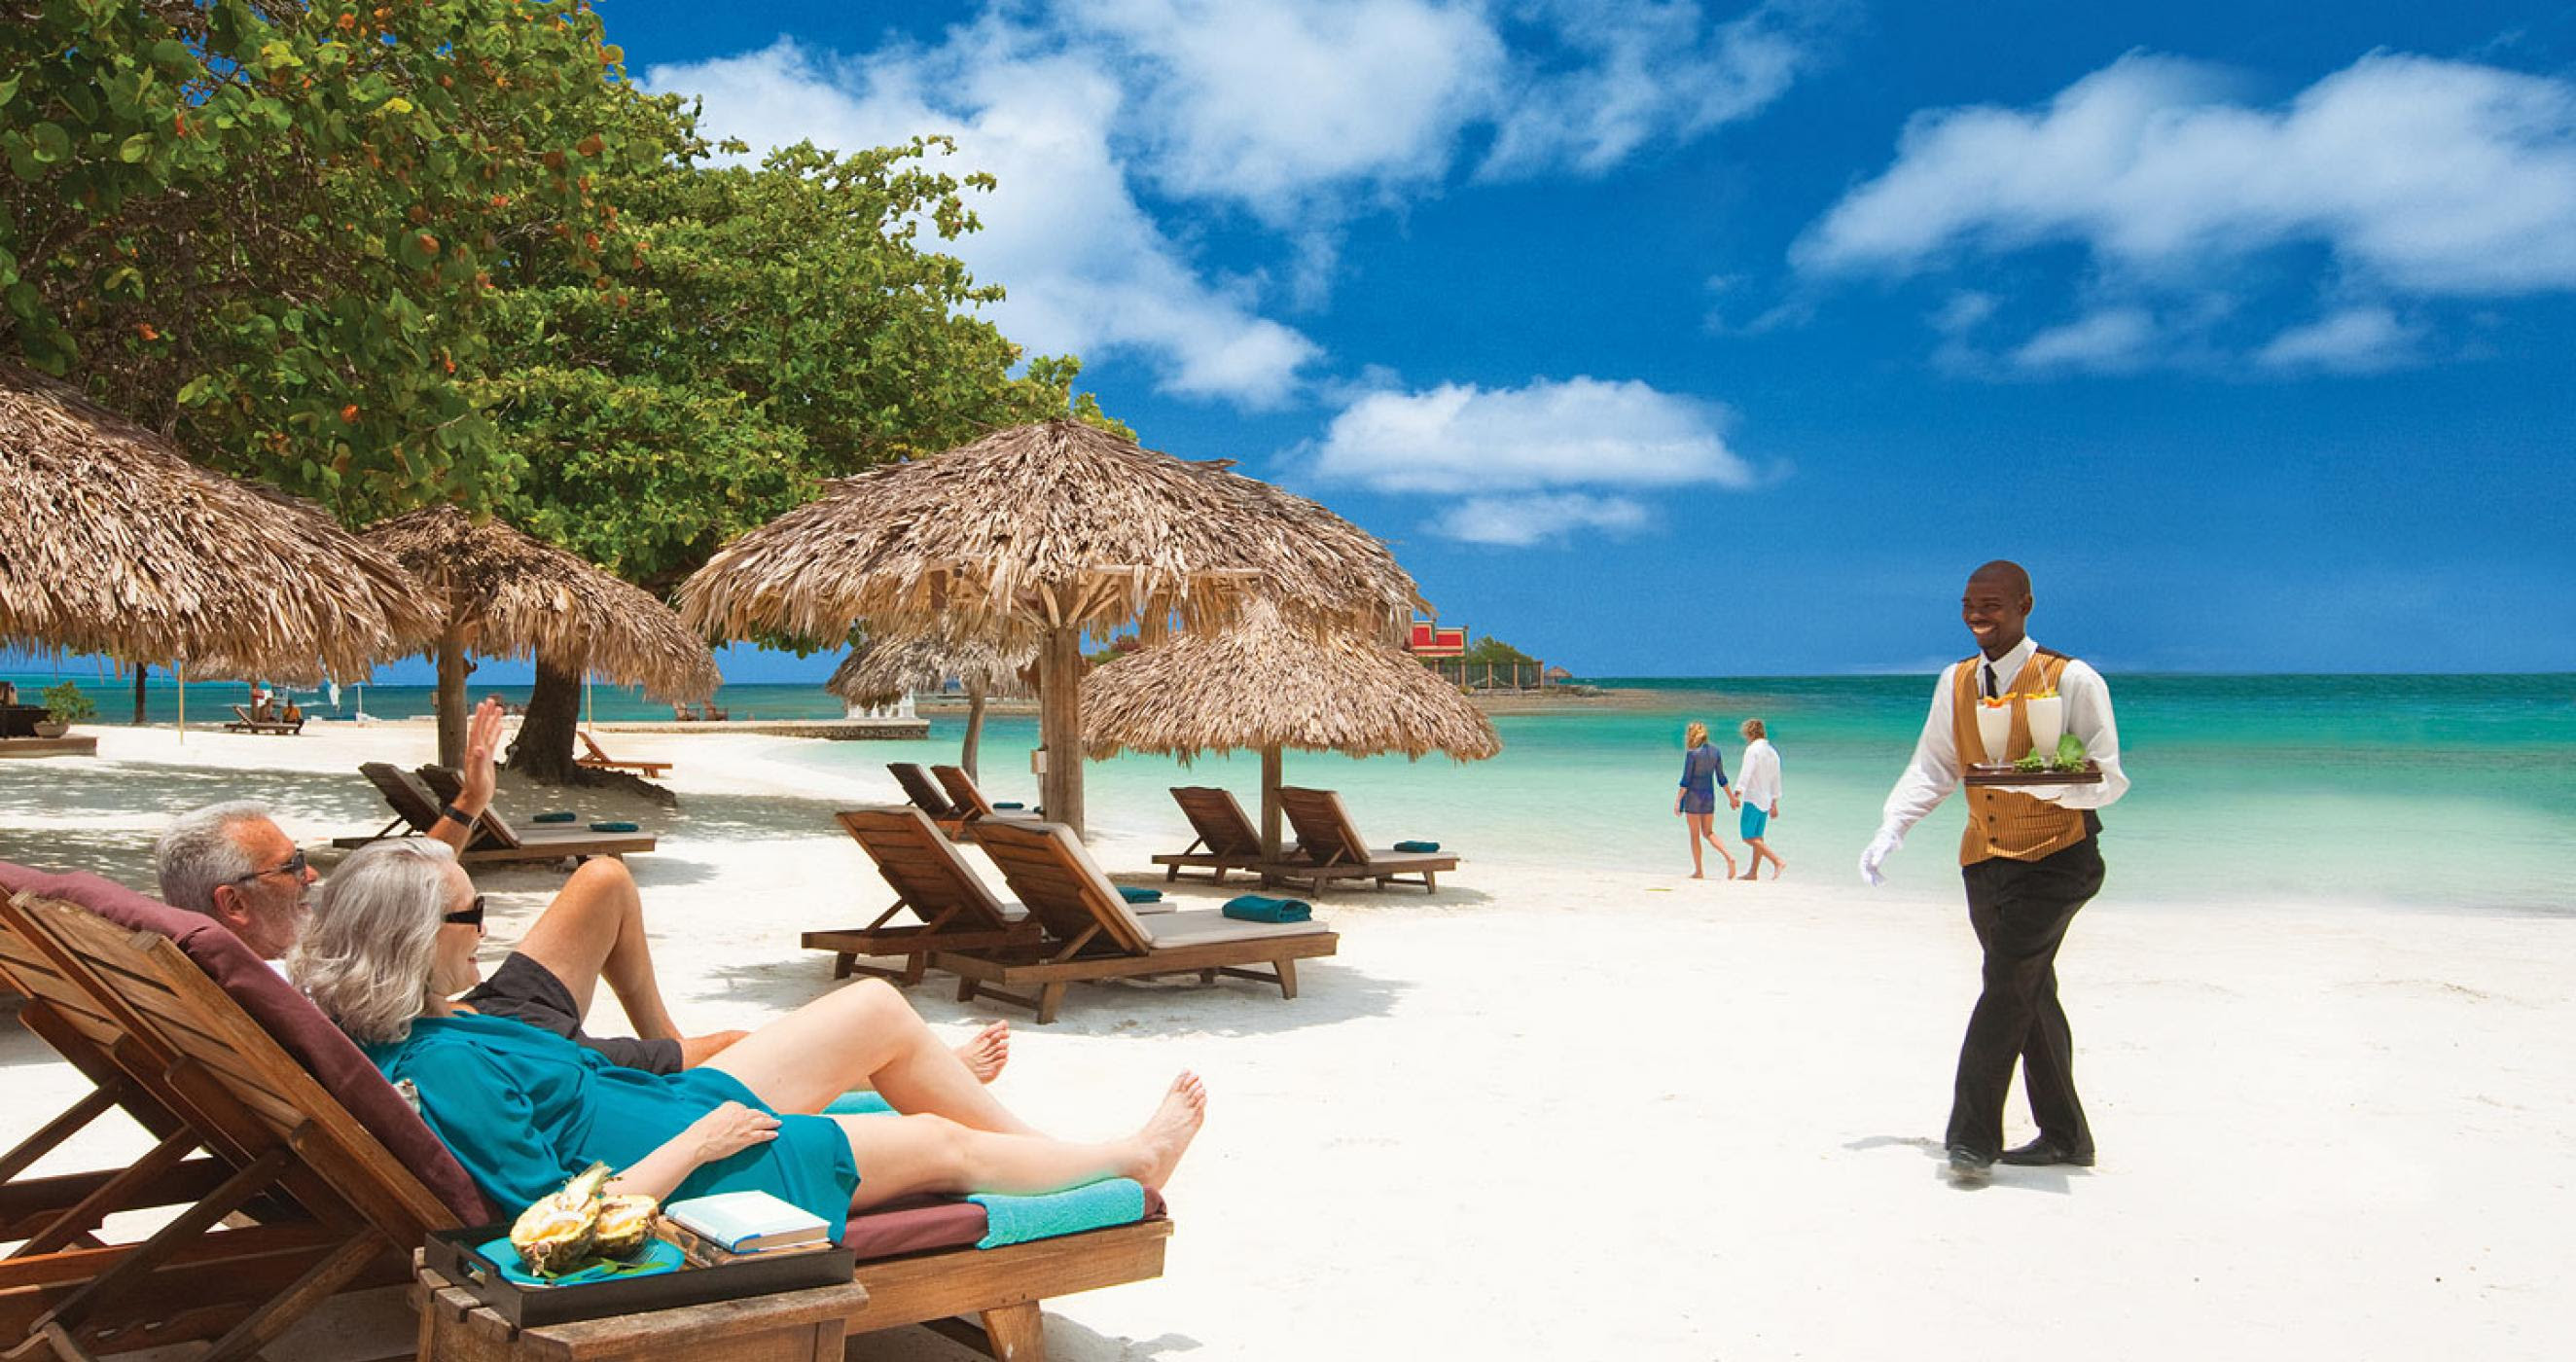 Sandals Royal Caribbean  Now Destination Weddings